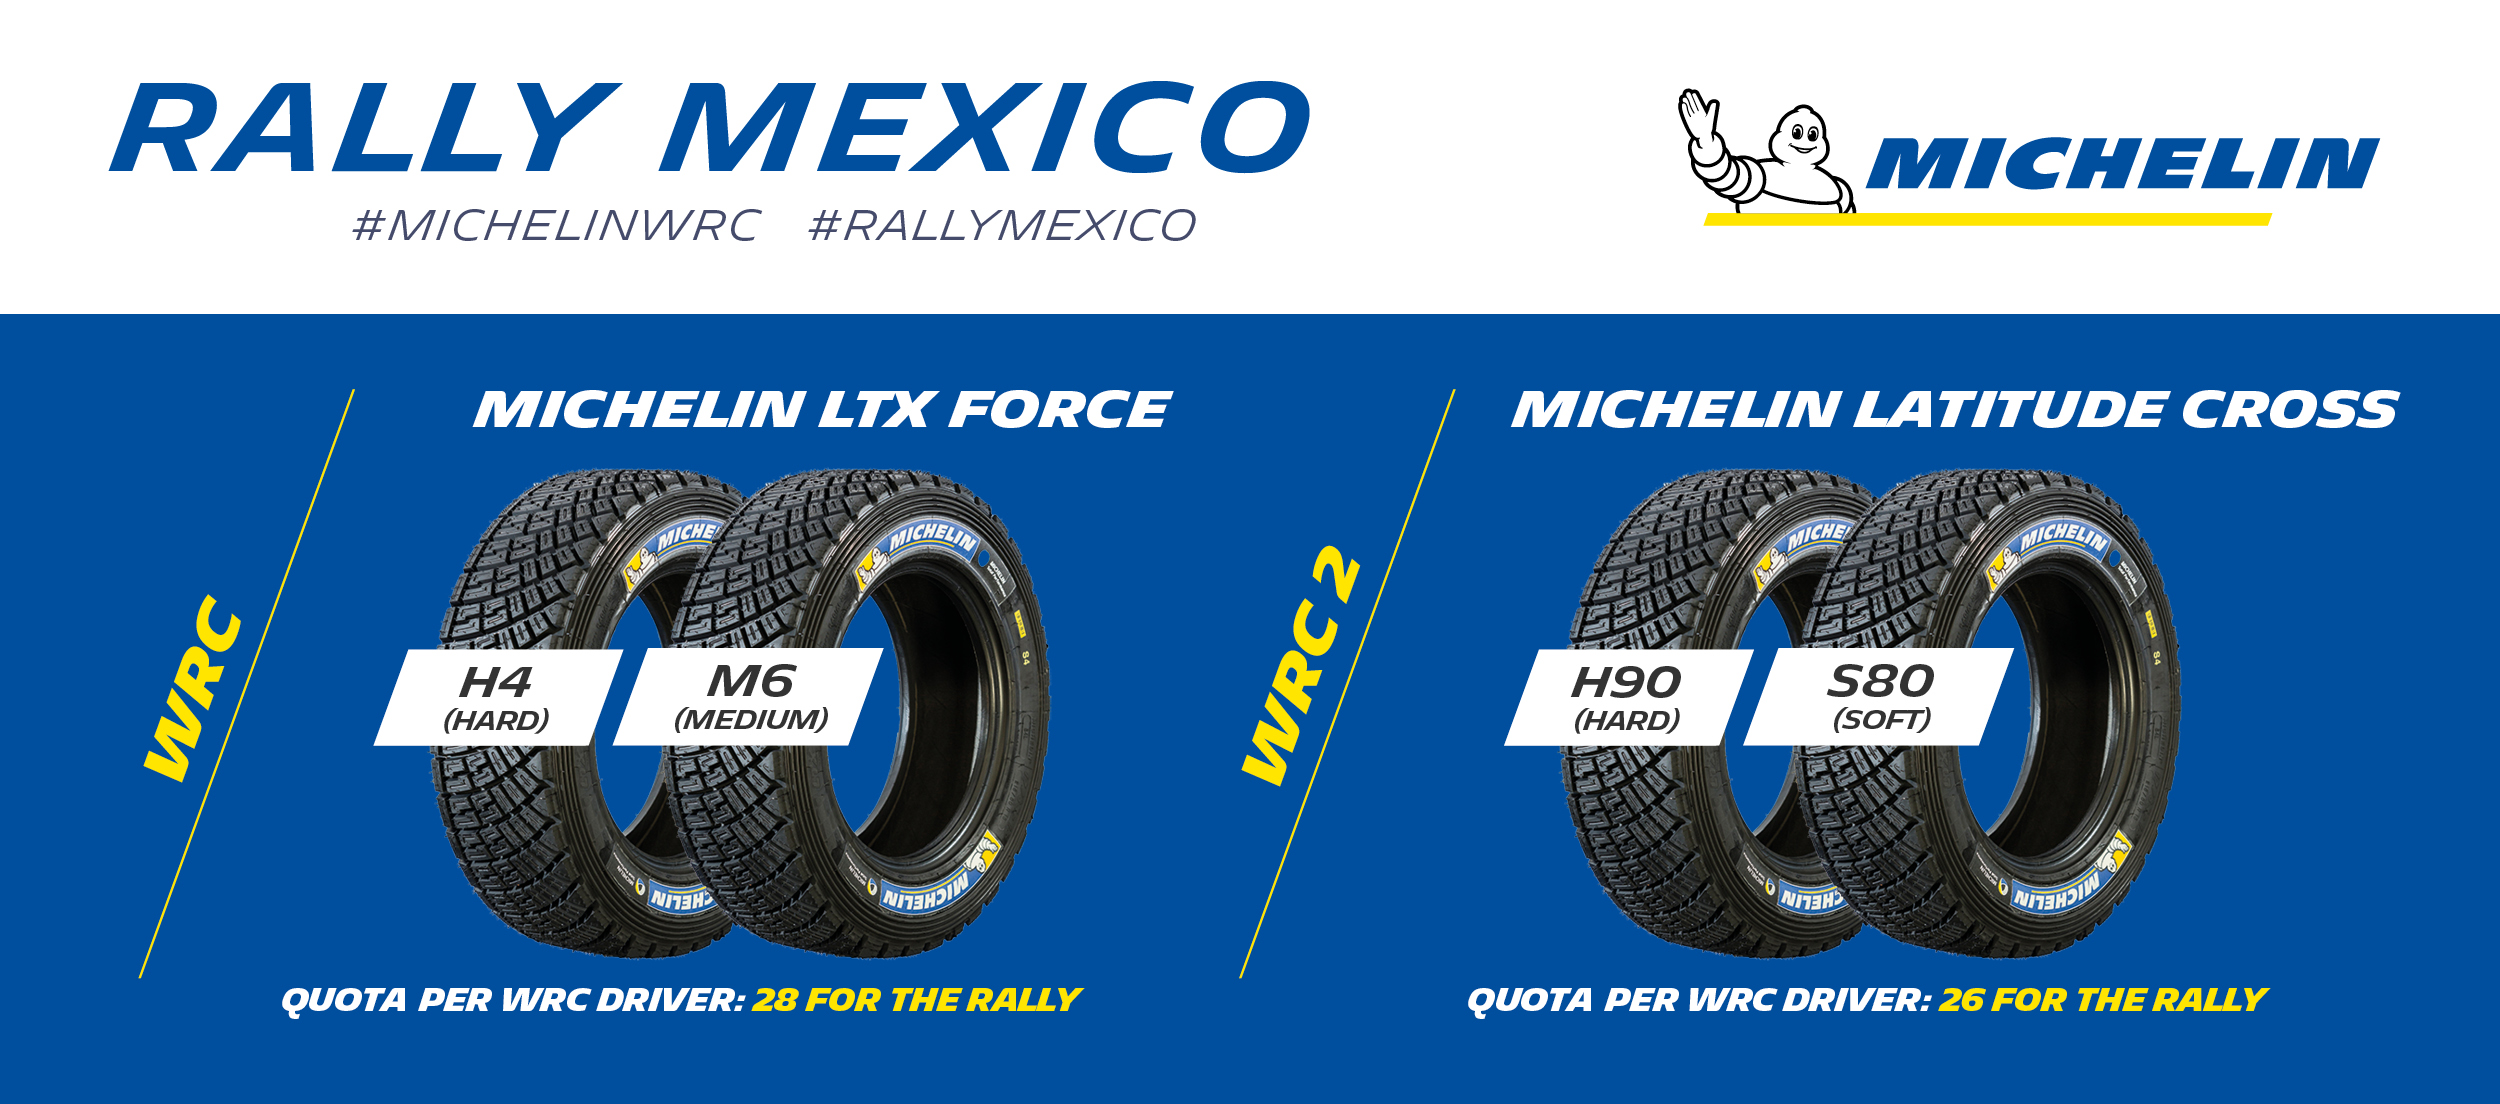 Michelin_MexicoWRC_TyreAllocation